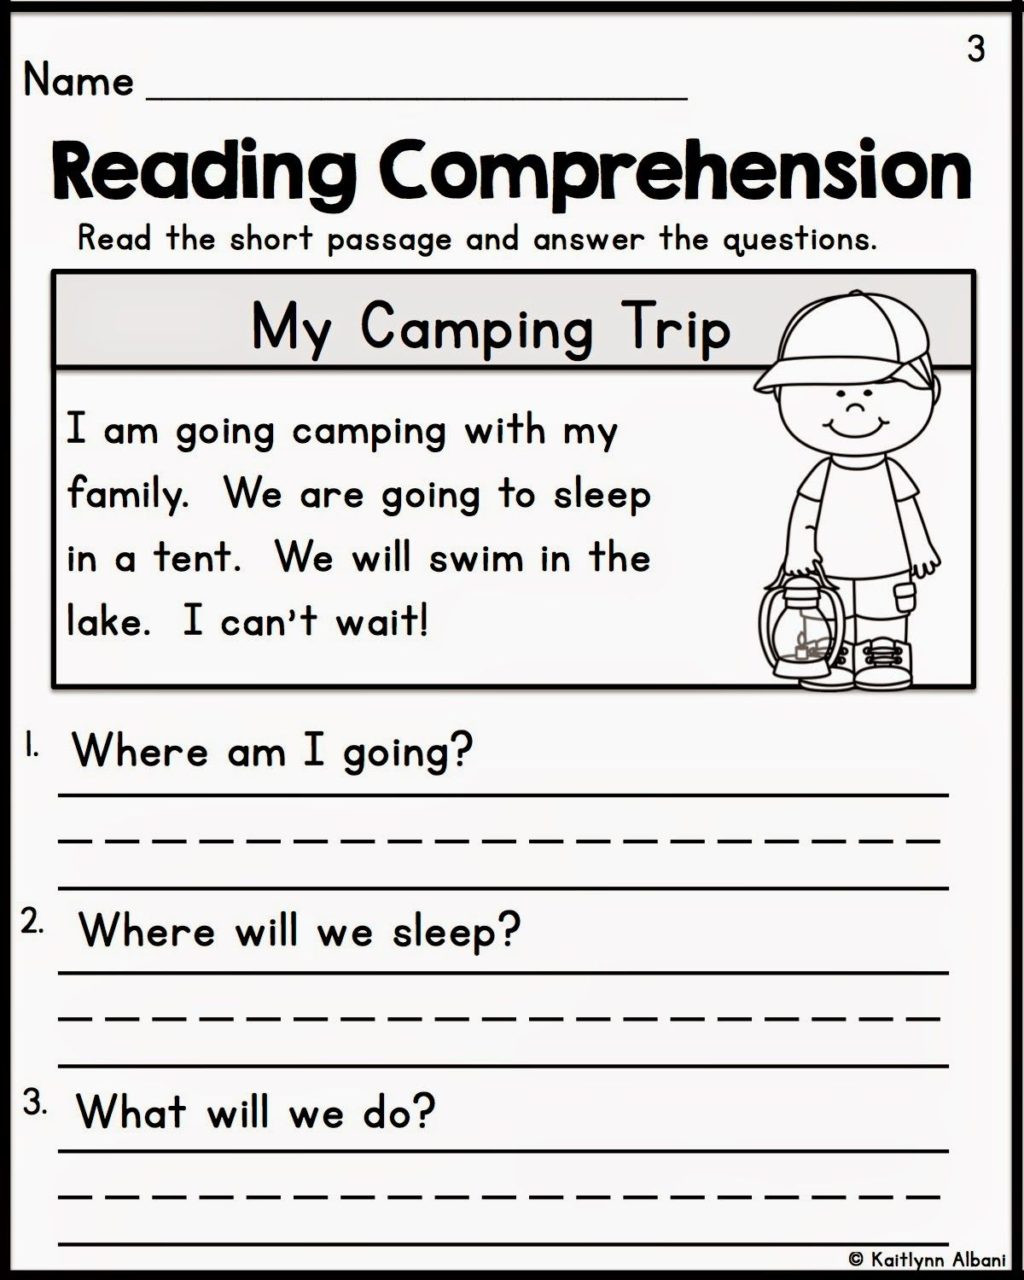 Kindergarten Reading Comprehension Worksheet Worksheet Printable Kindergarten Worksheets Reading